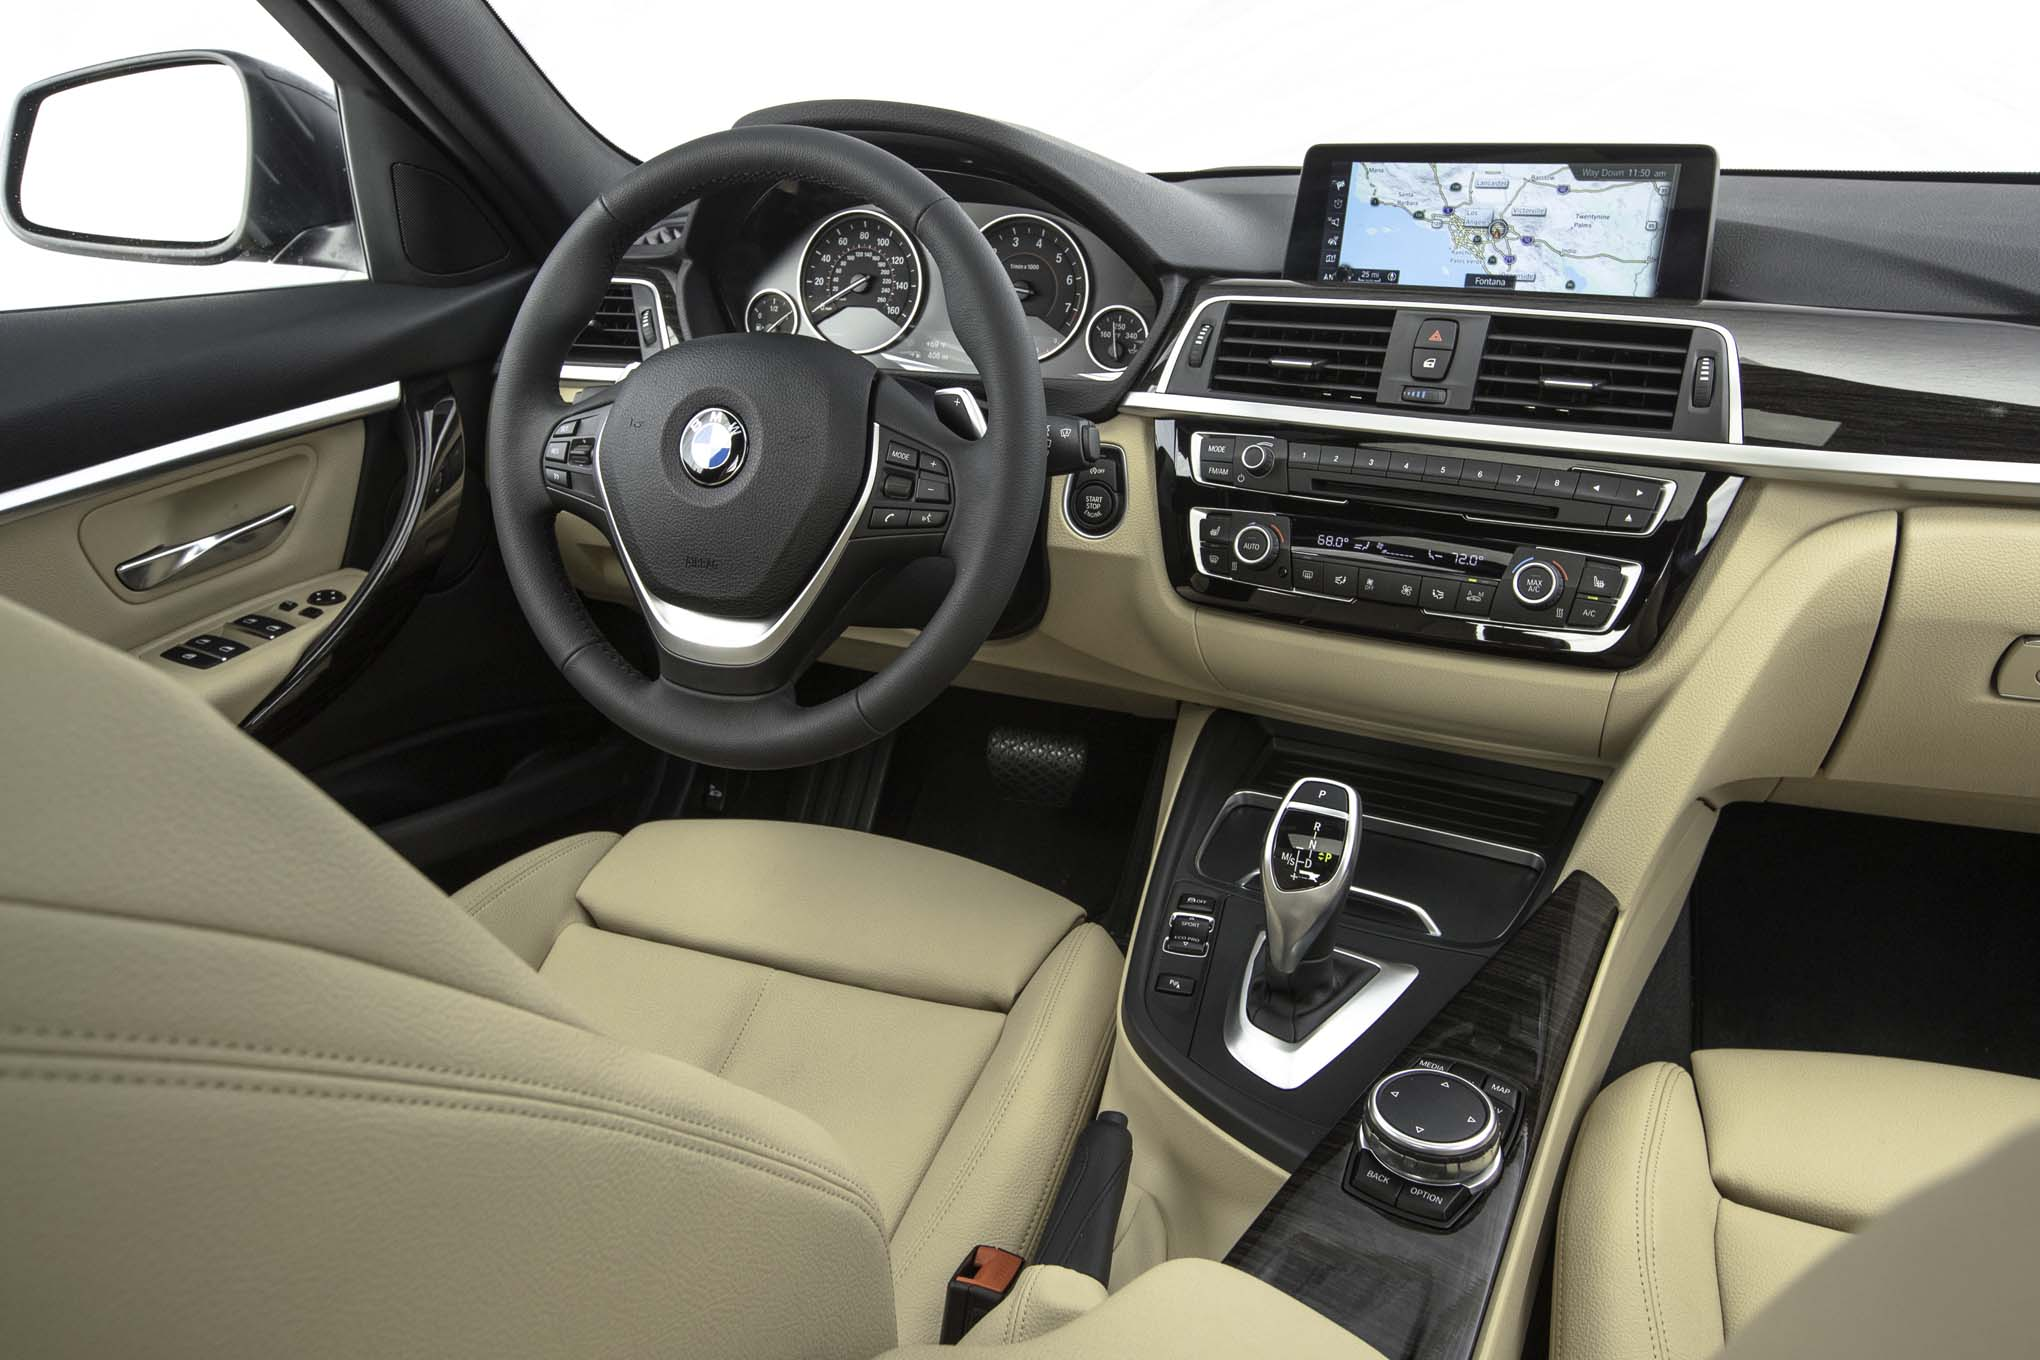 2017 BMW 330i Sedan Interior Dashboard (View 50 of 59)